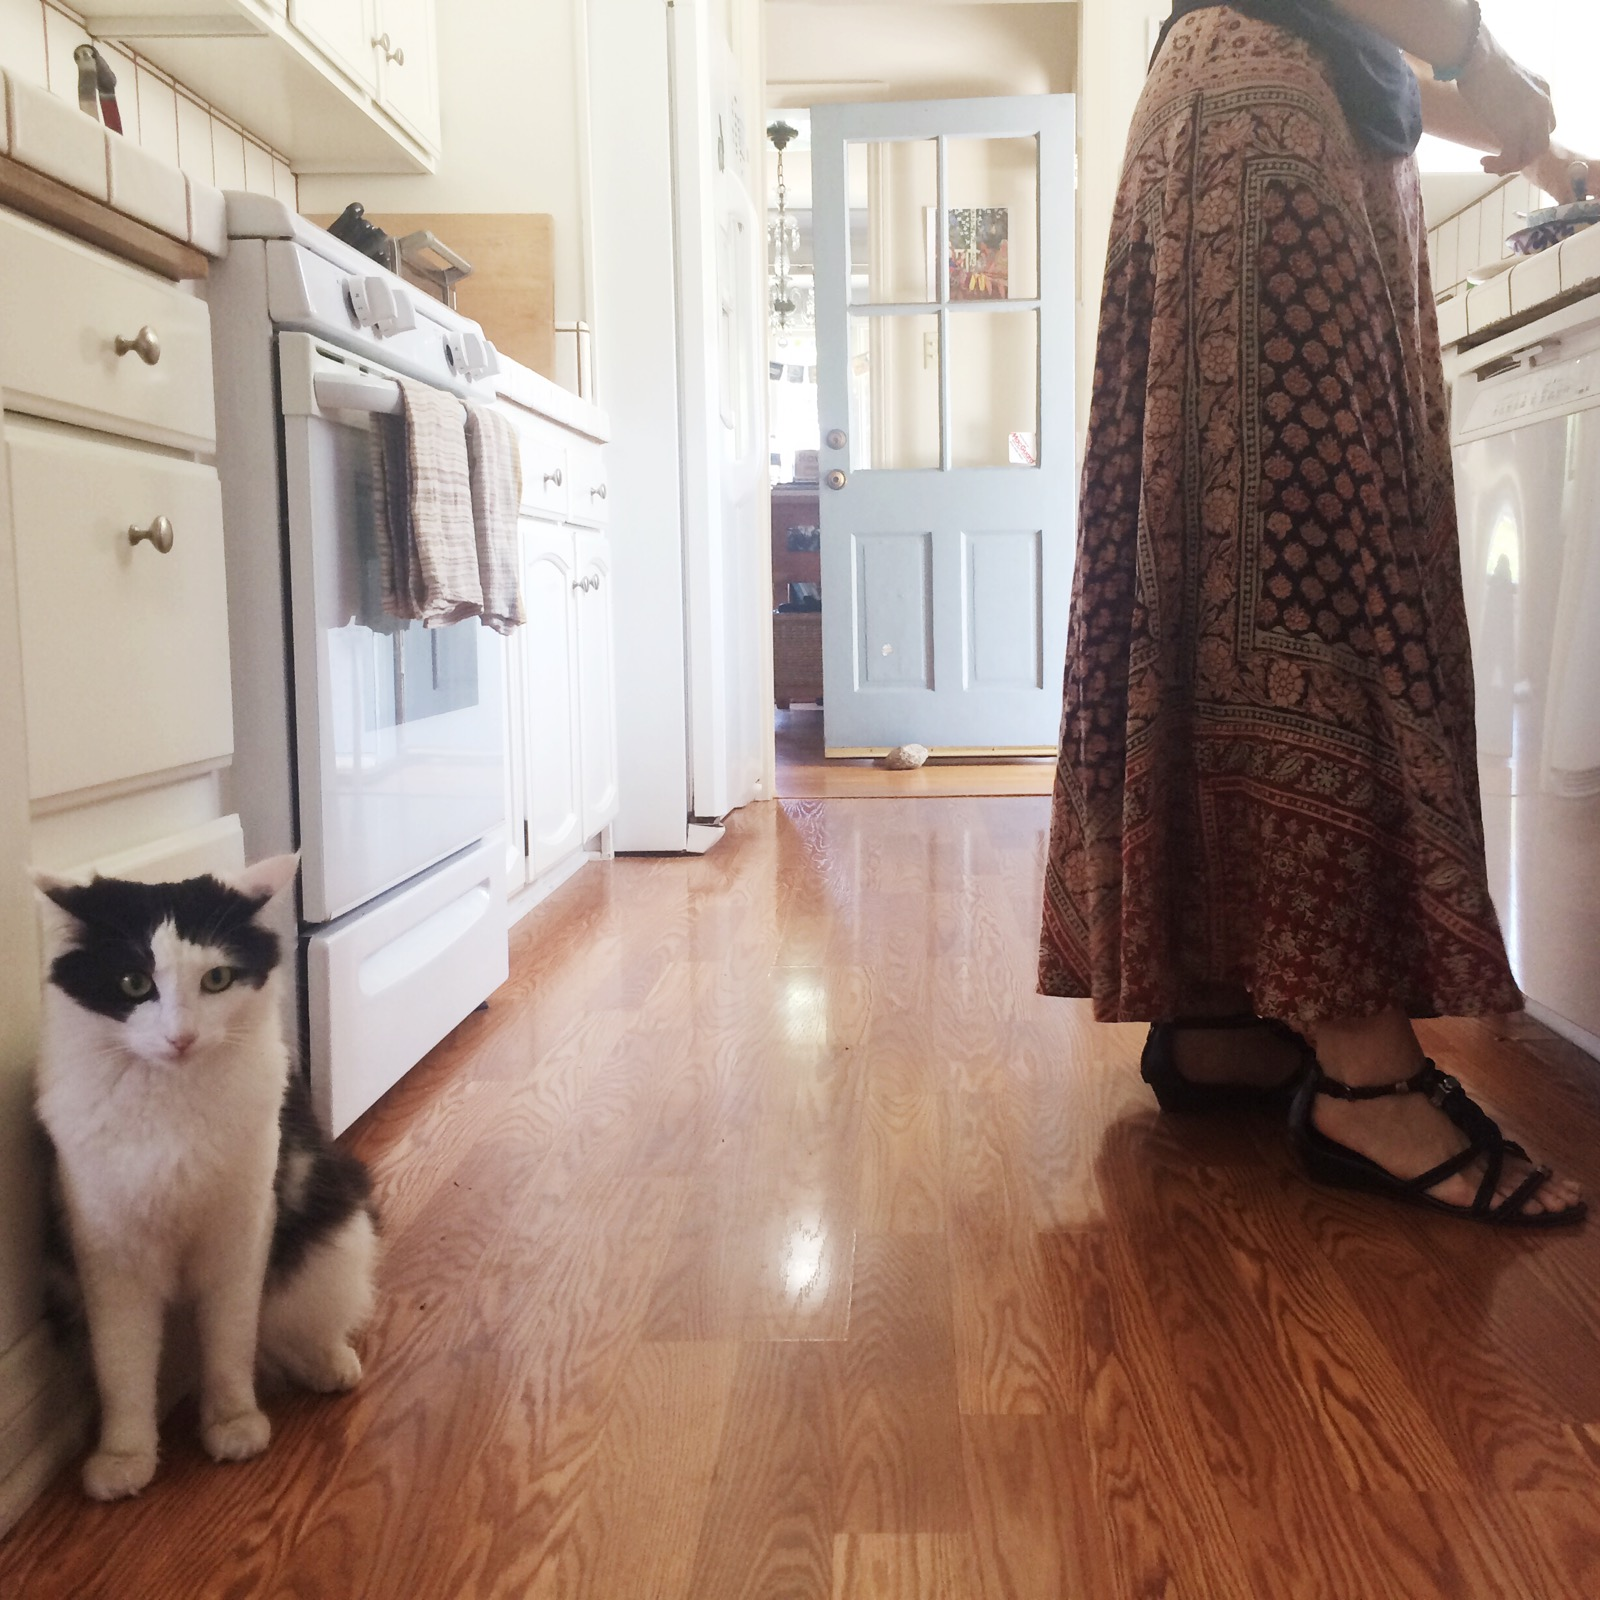 Carrie Anne and cat in the kitchen